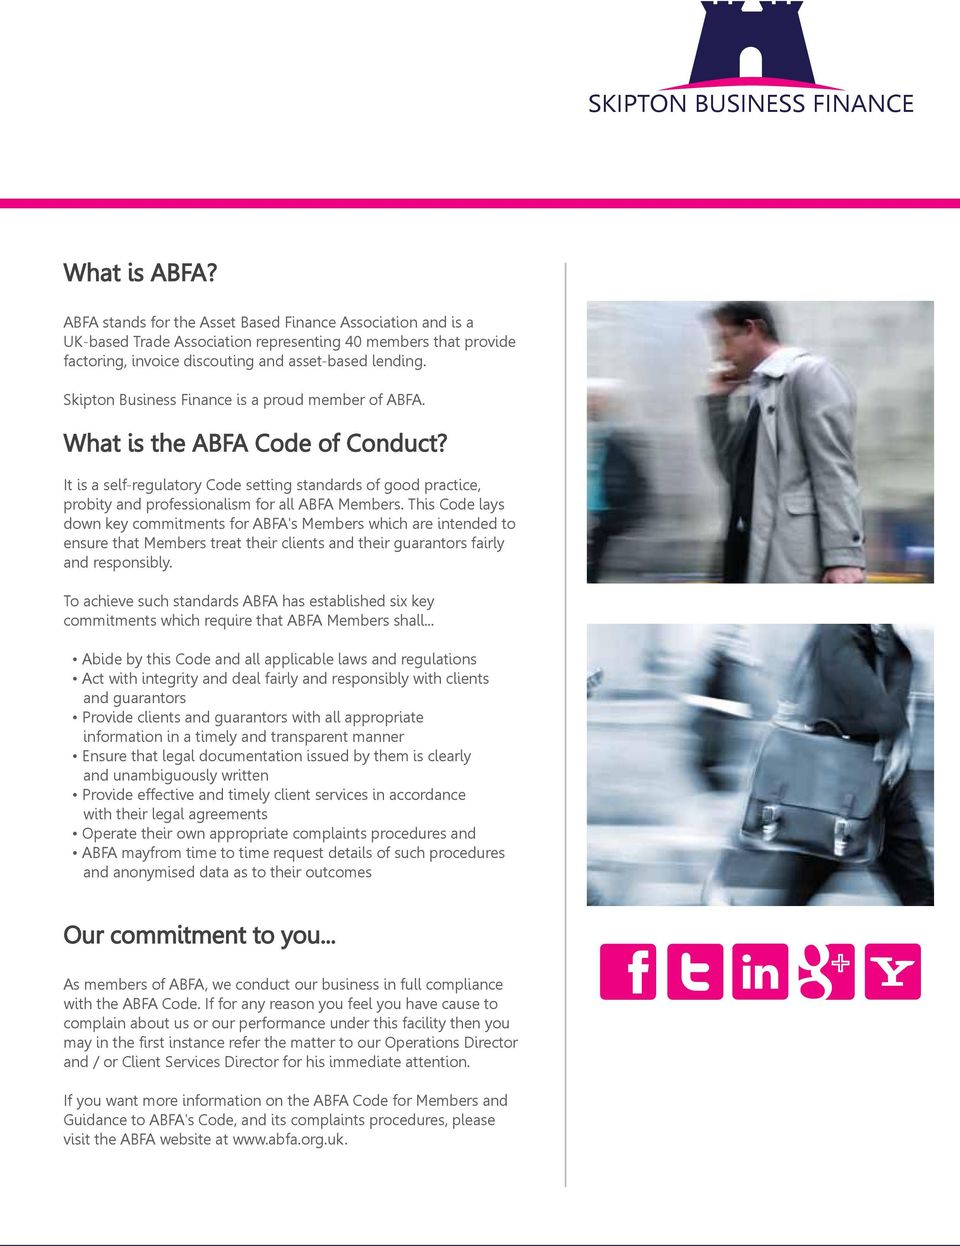 This Code lays down key commitments for ABFA's Members which are intended to ensure that Members treat their clients and their guarantors fairly and responsibly.